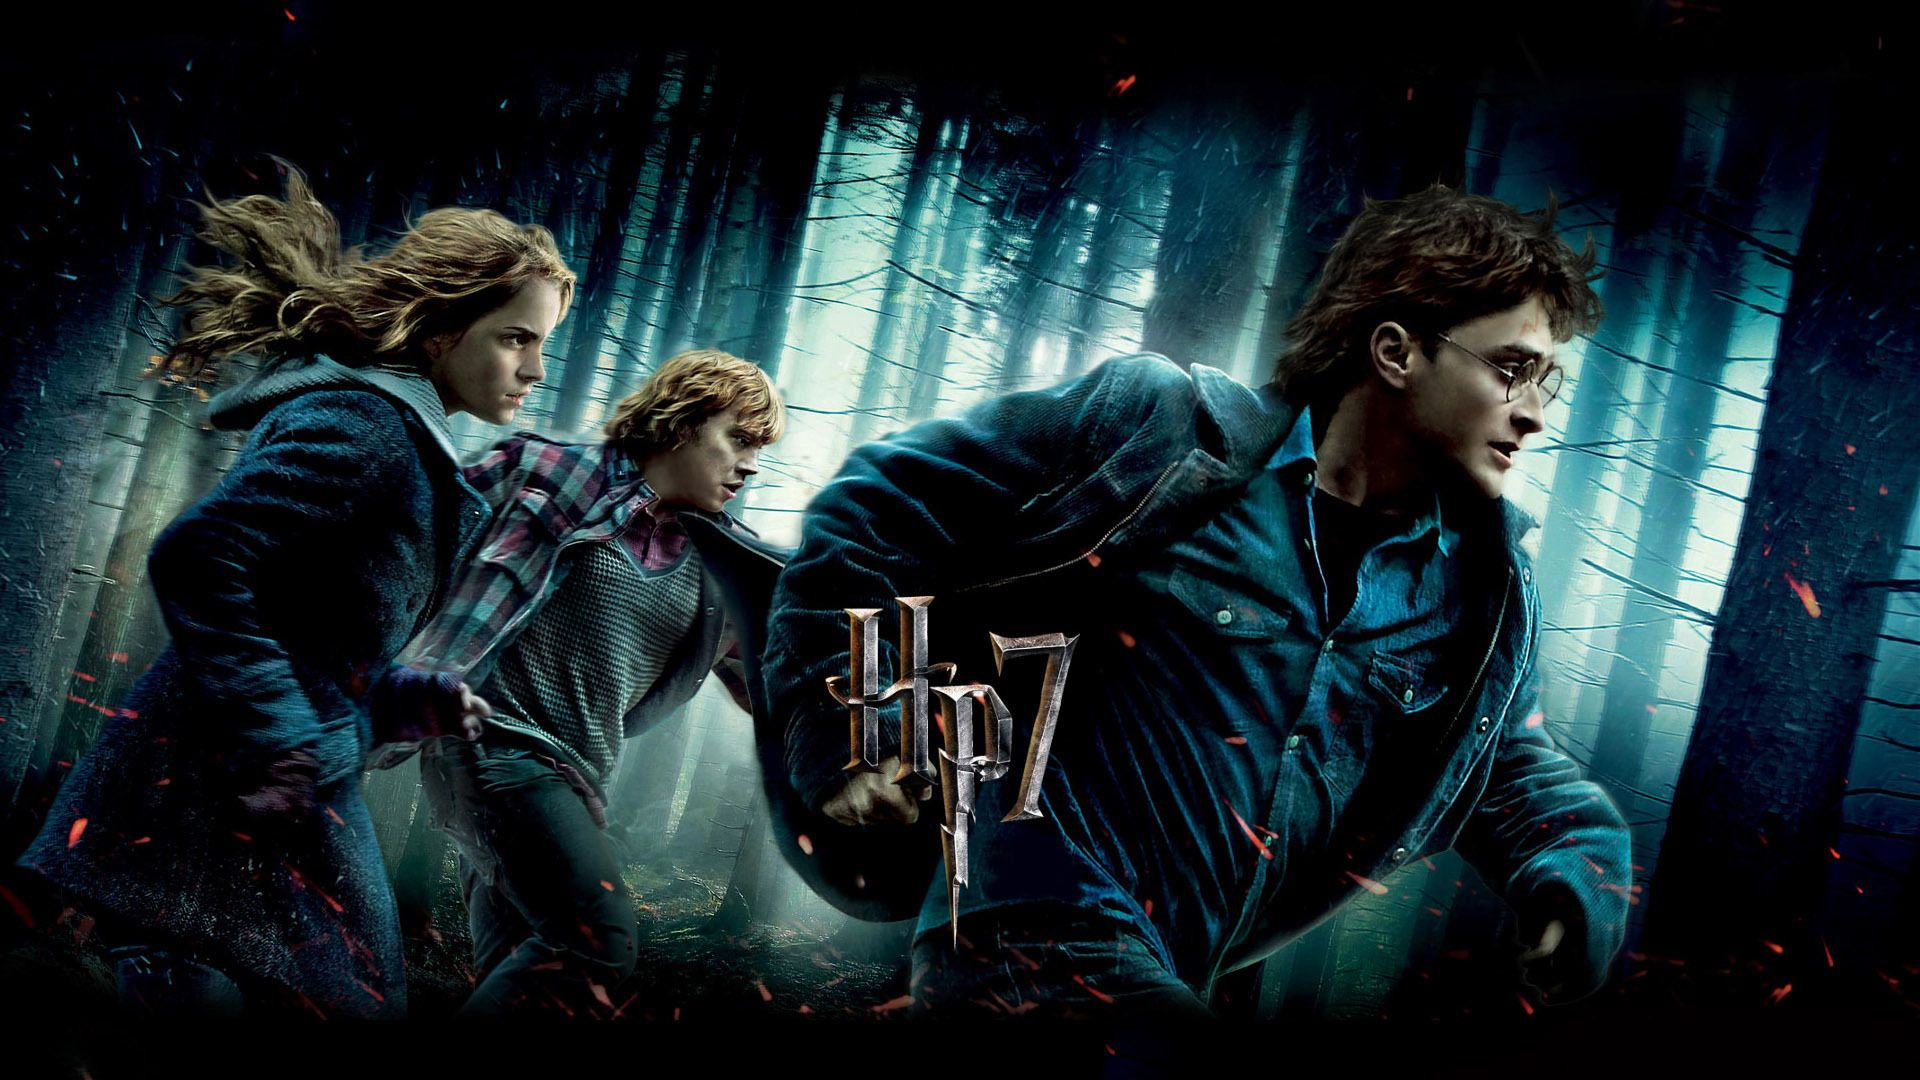 Harry Potter And The Deathly Hallows Part Wallpapers Deathly Hallows Part 1 Harry Potter Wallpaper Deathly Hallows Wallpaper